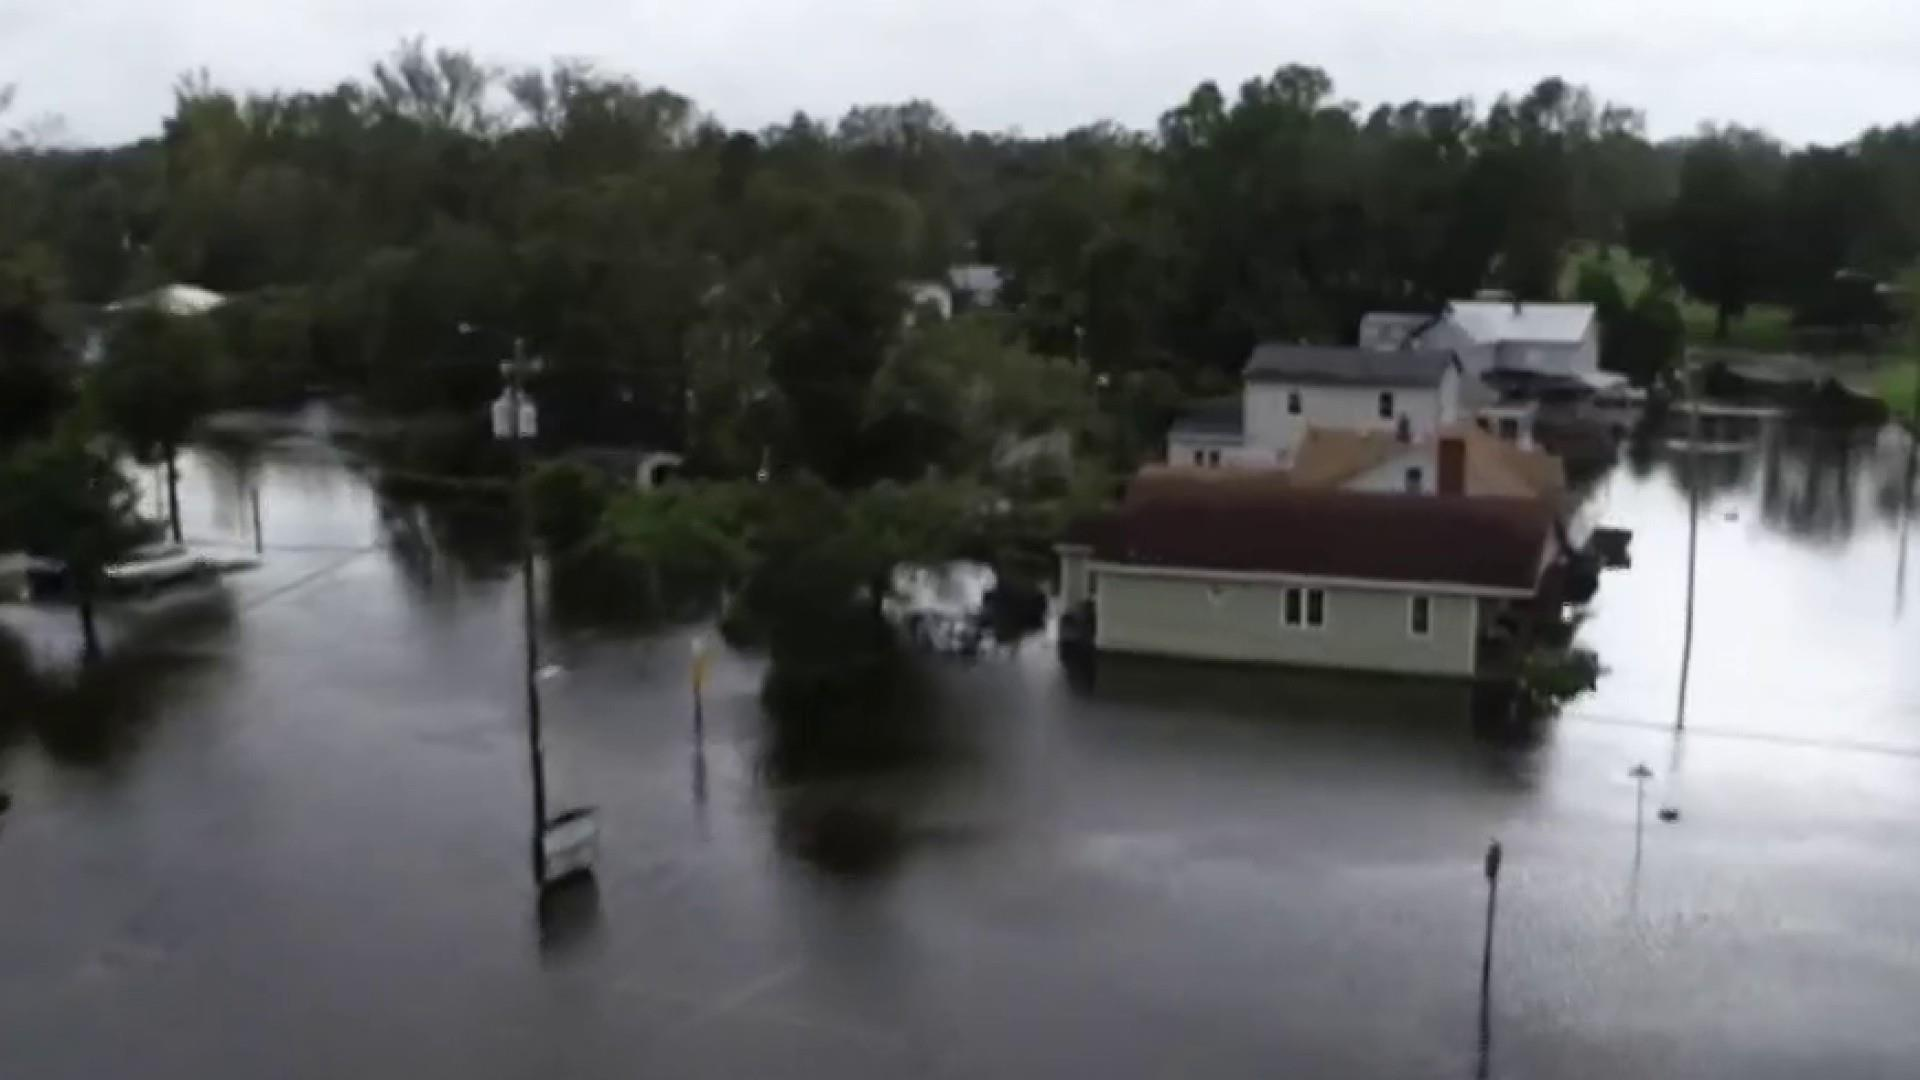 Roads turn into rivers as flooding continues in South Carolina